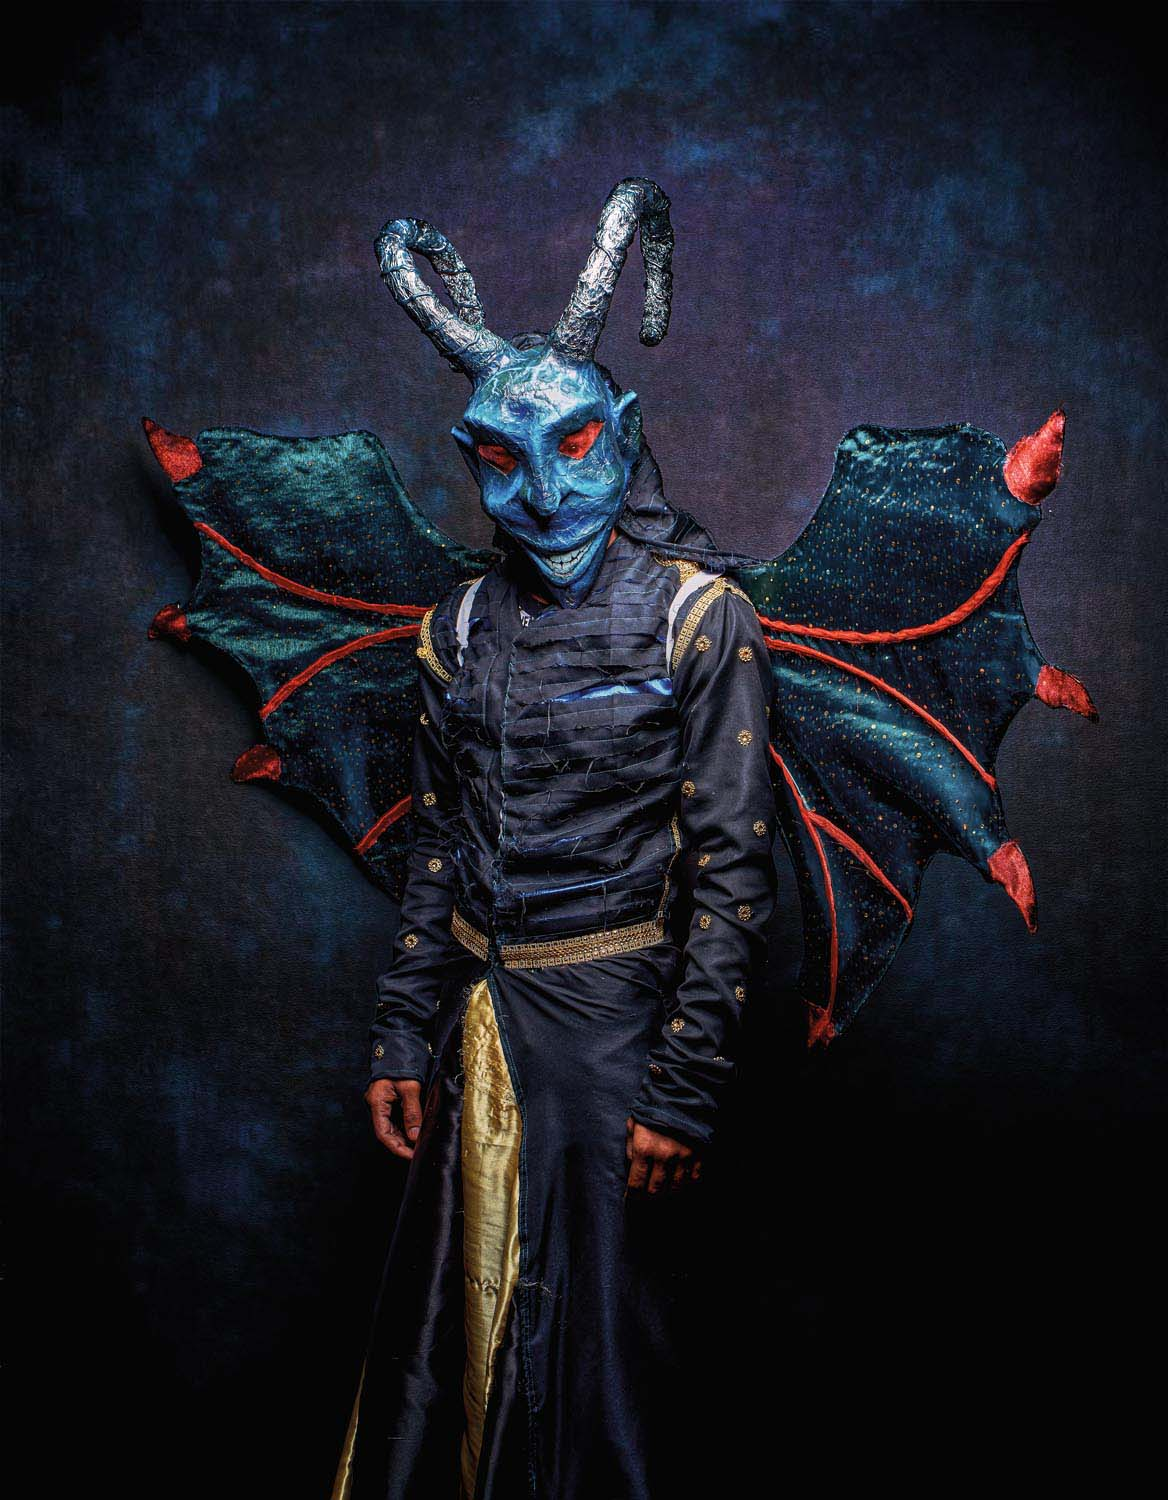 Wicked grin, curving horns, red-tipped wings: Nemai Ali's character Satan is a longtime mainstay in traditional devil mas. Part of the band Gulf Inferno, produced by visual arts students at the University of the West Indies, Ali made his traditional mas